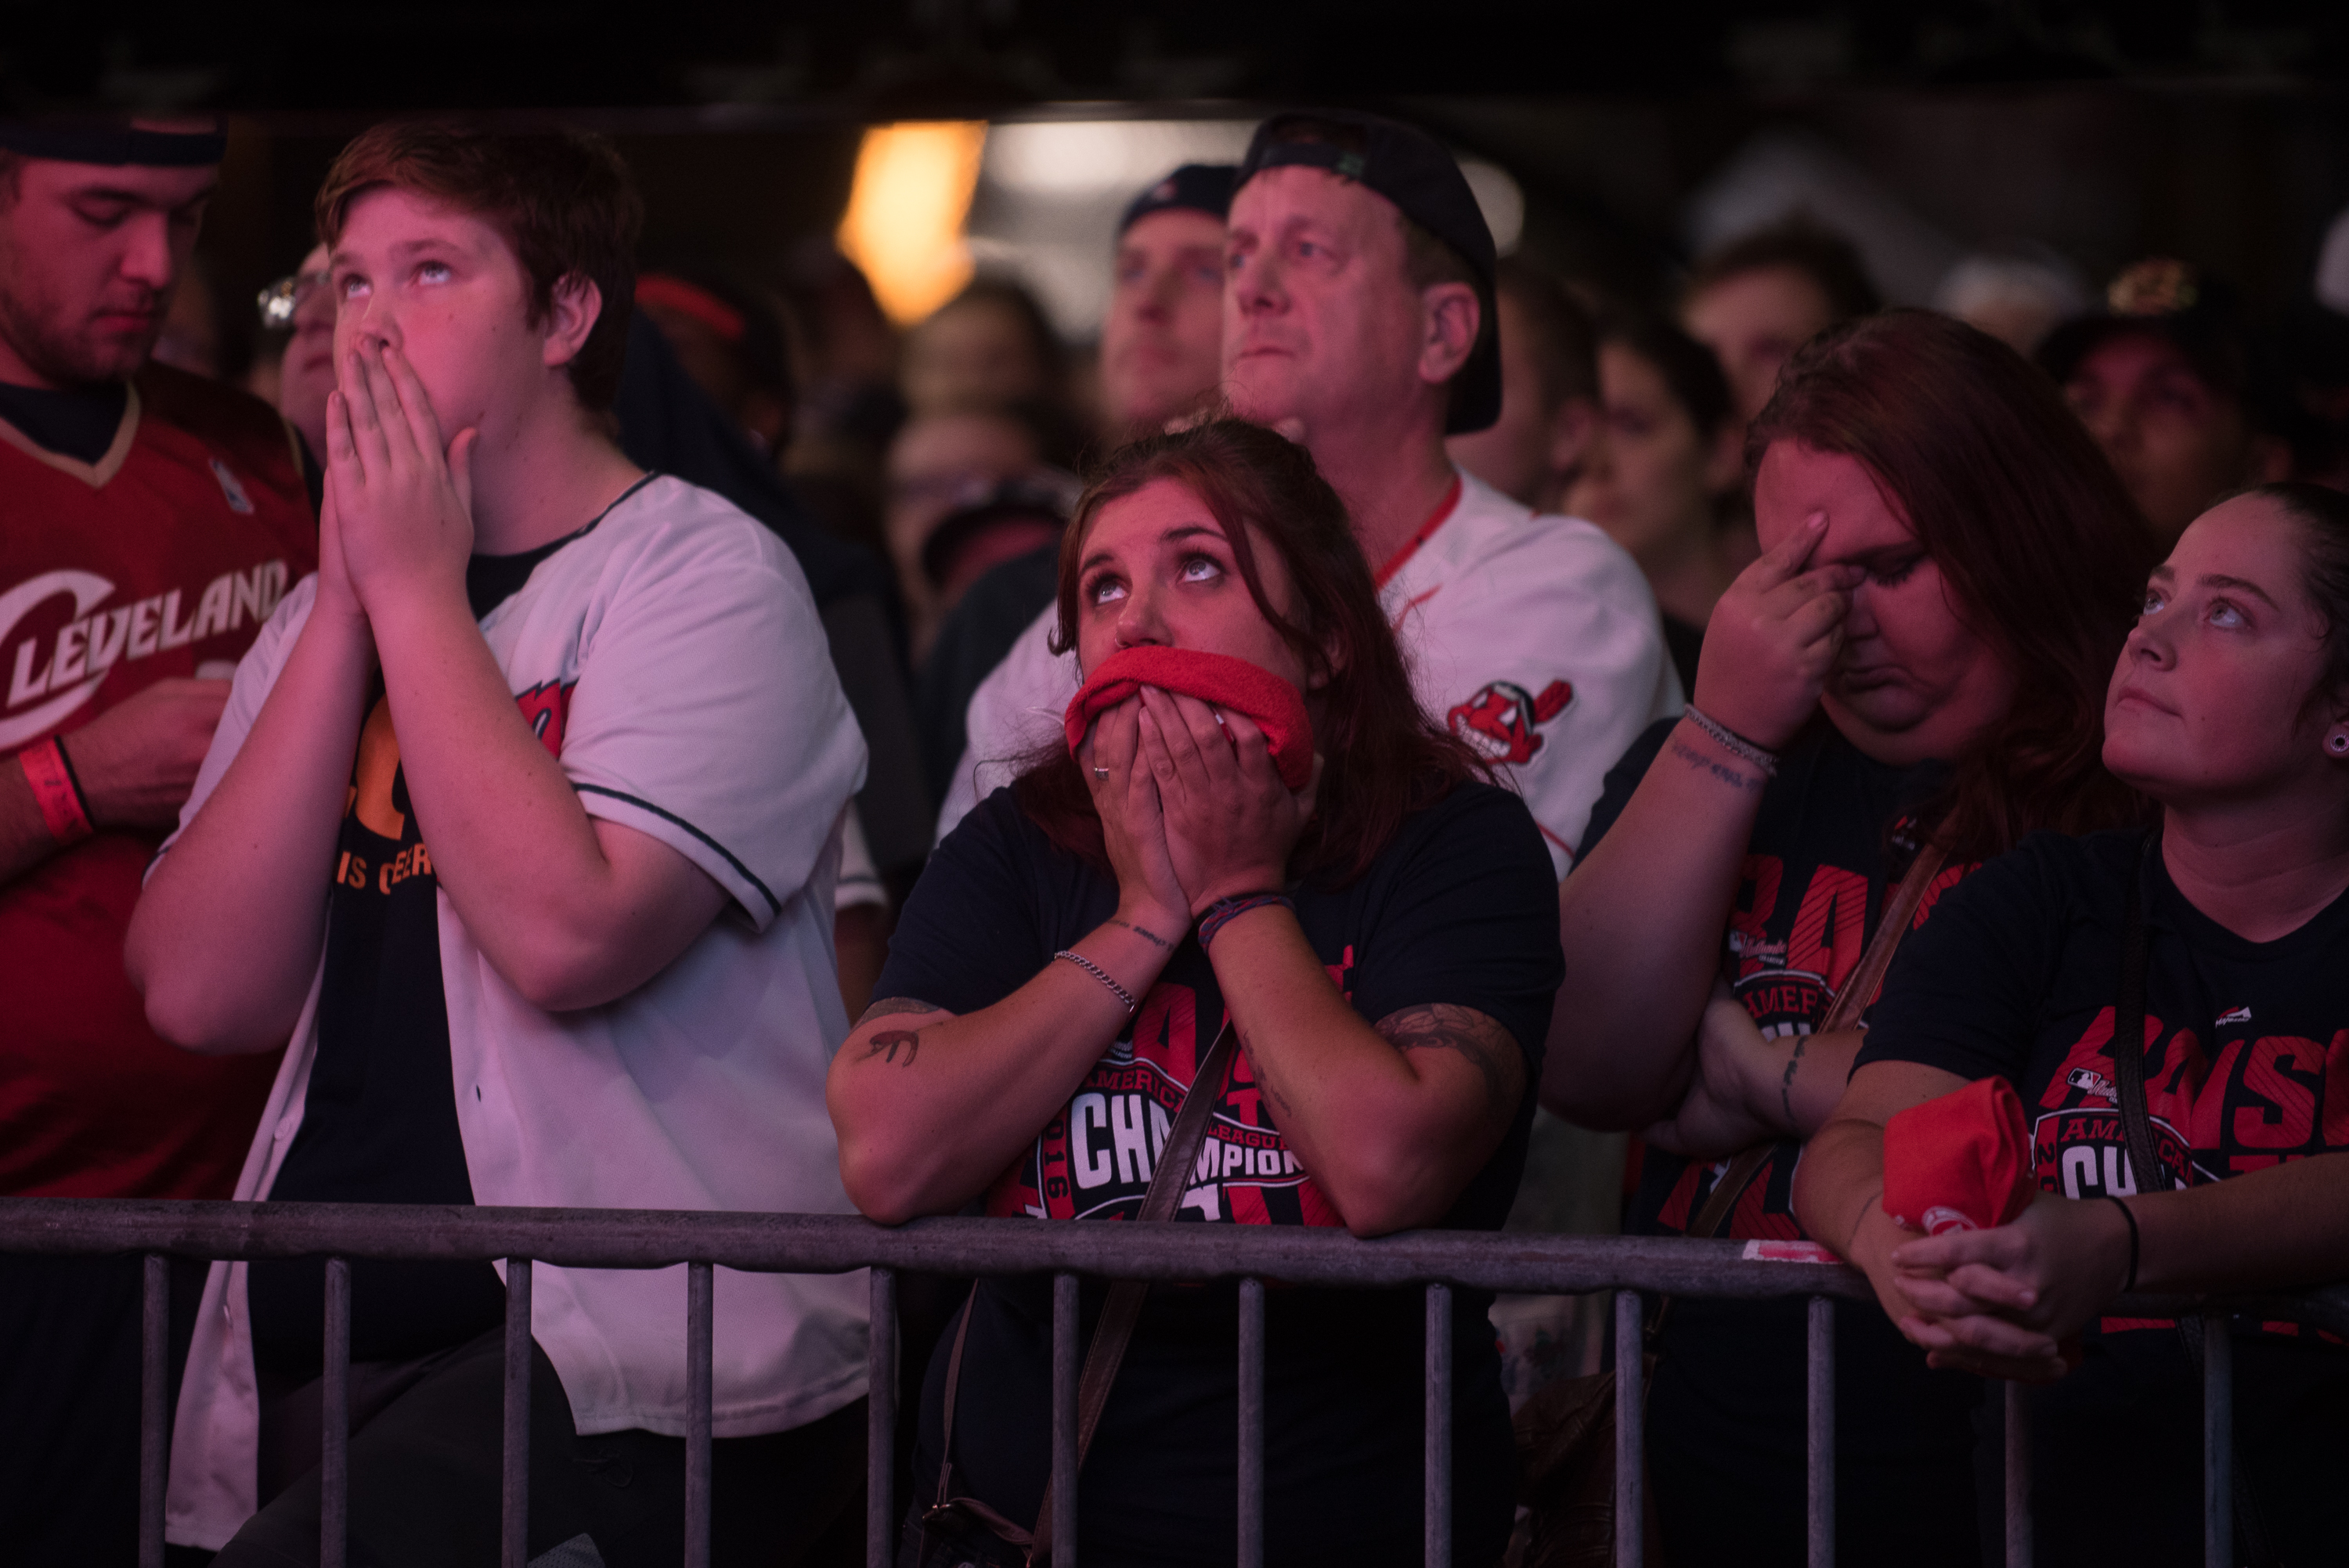 Cleveland Indians Fans Gather To The Final Game Of World Series Against The Chicago Cubs